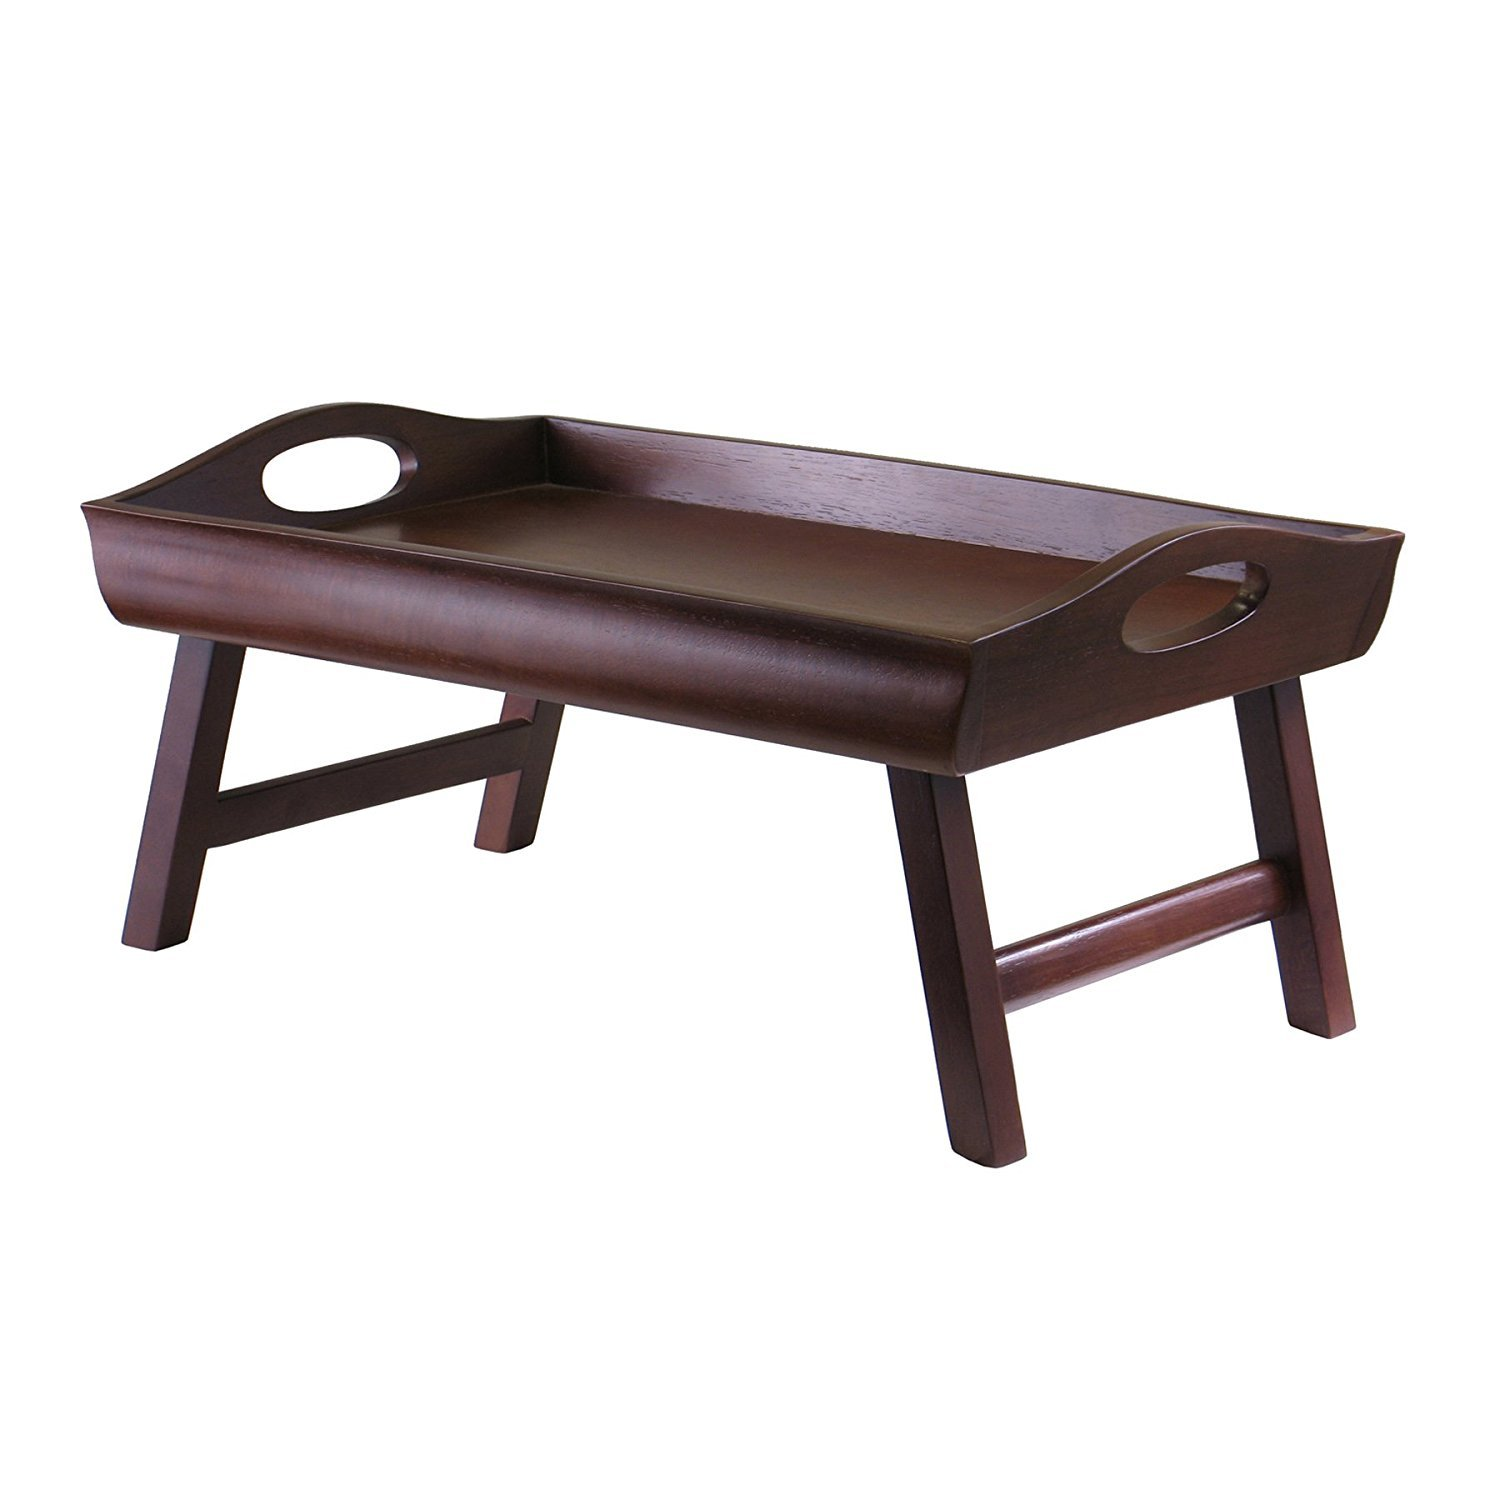 Winsome Wood Sedona Bed Tray Curved Side, Foldable Legs, Large Handle (4) by Winsome Wood